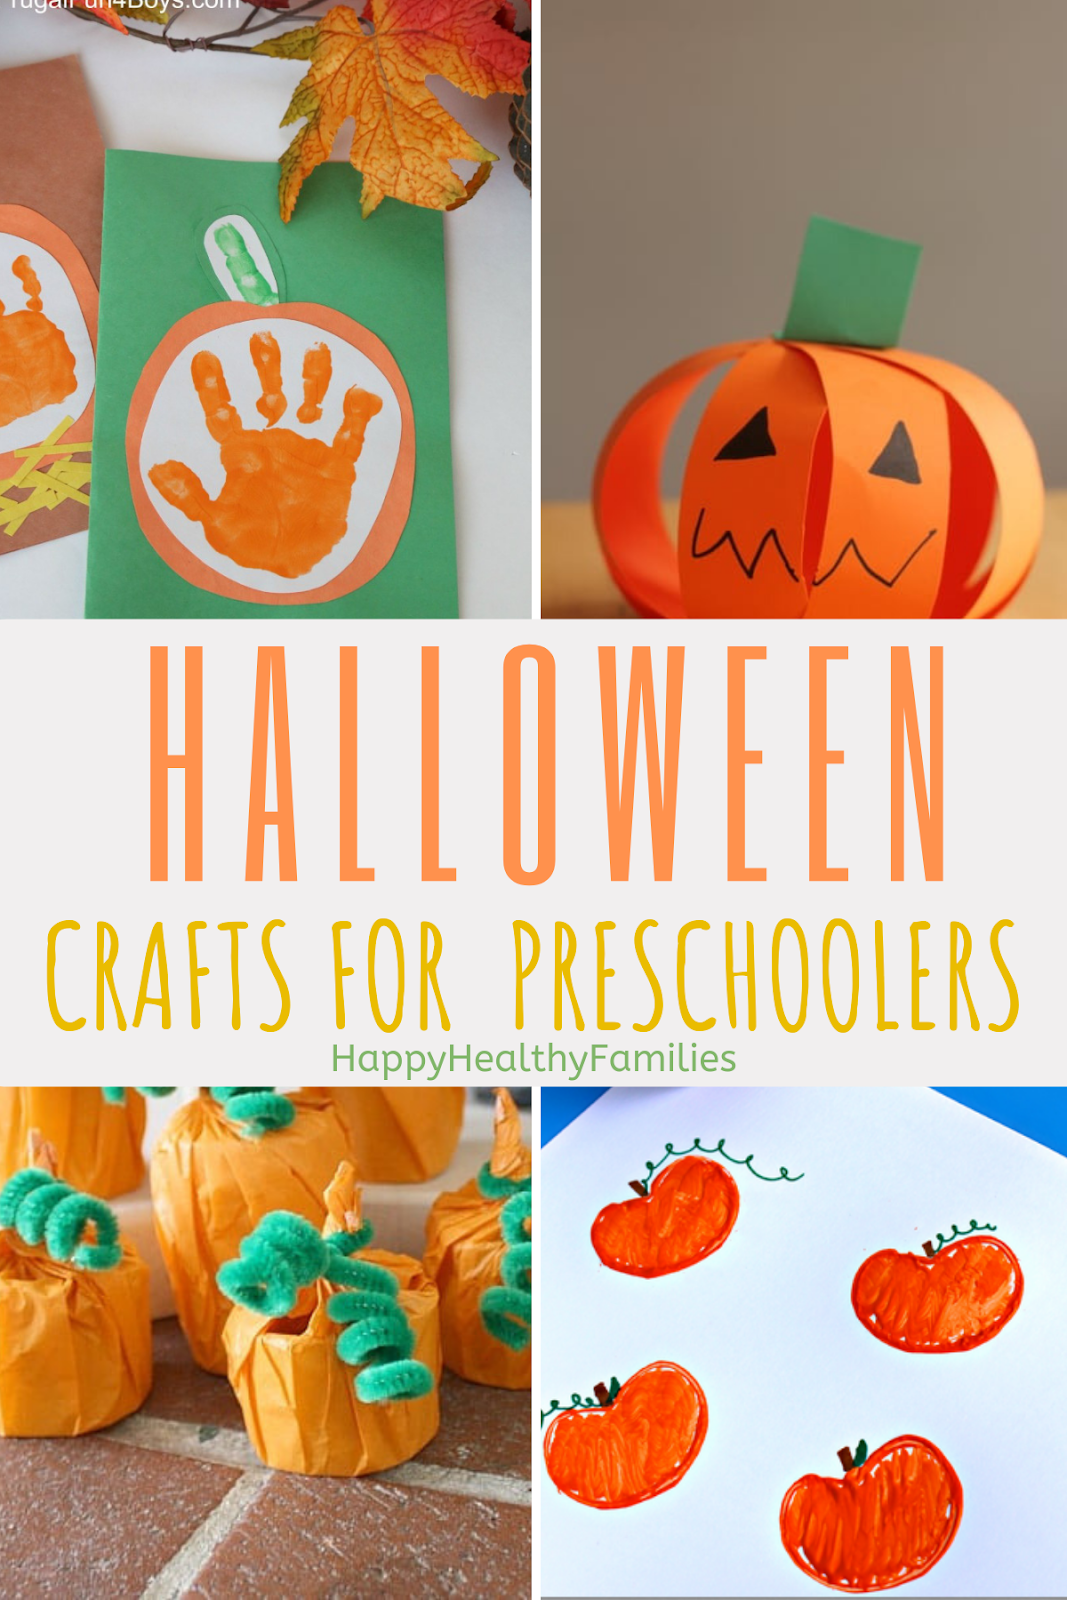 Happy Healthy Families 10 Easy Halloween Crafts For